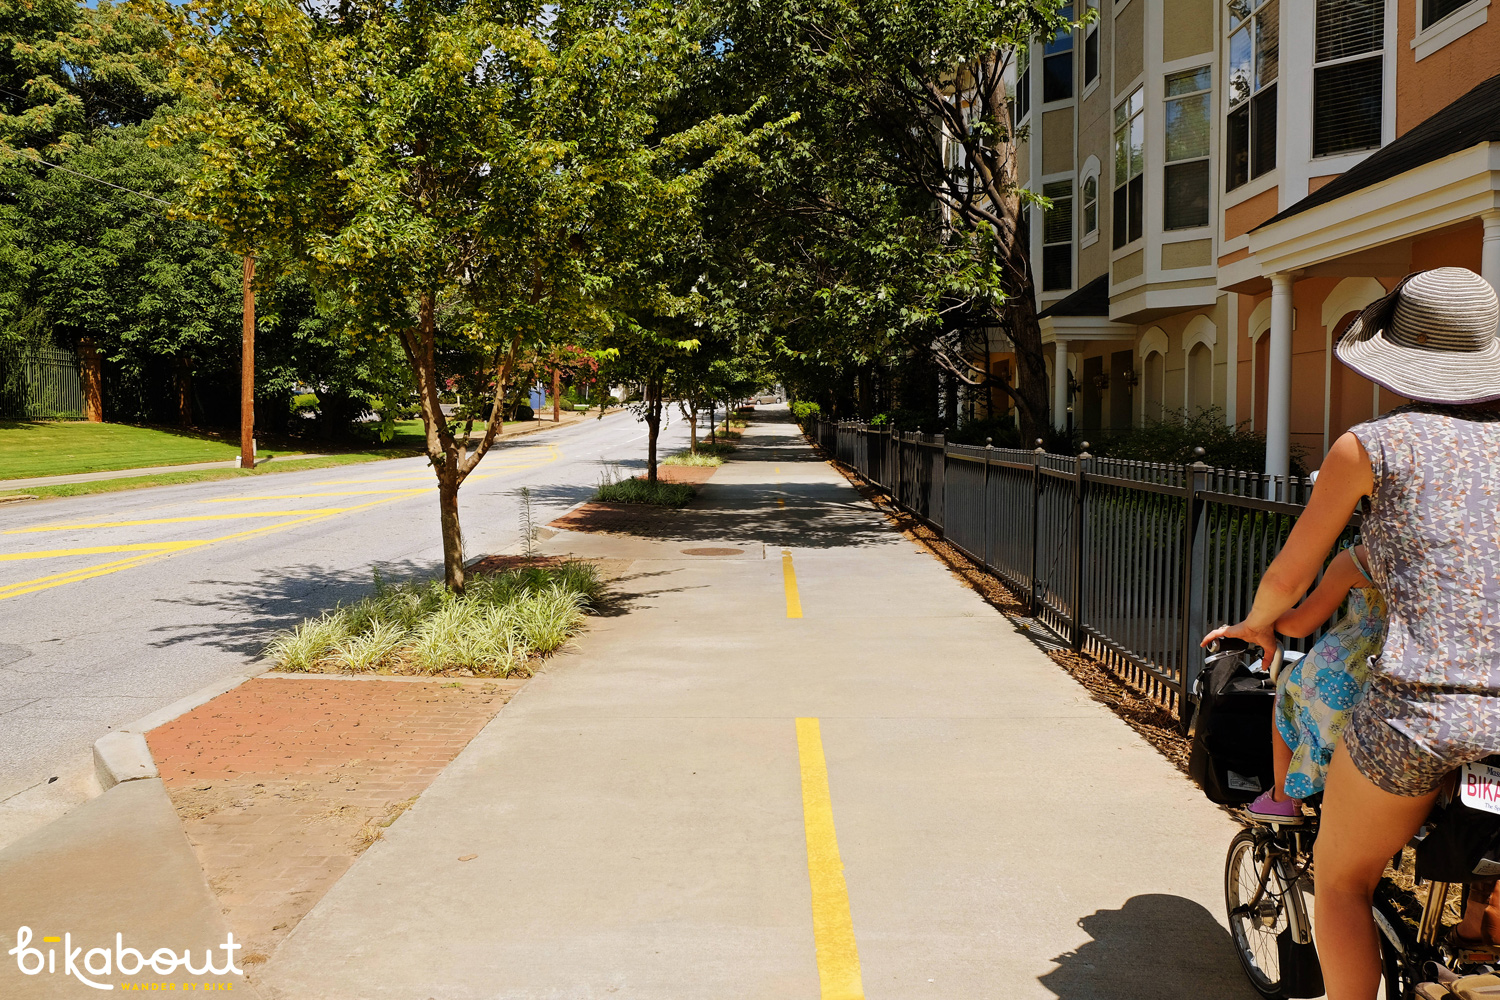 Stone Mountain PATH Trail is 90% off-road and is a 30 mile round trip from downtown Atlanta.